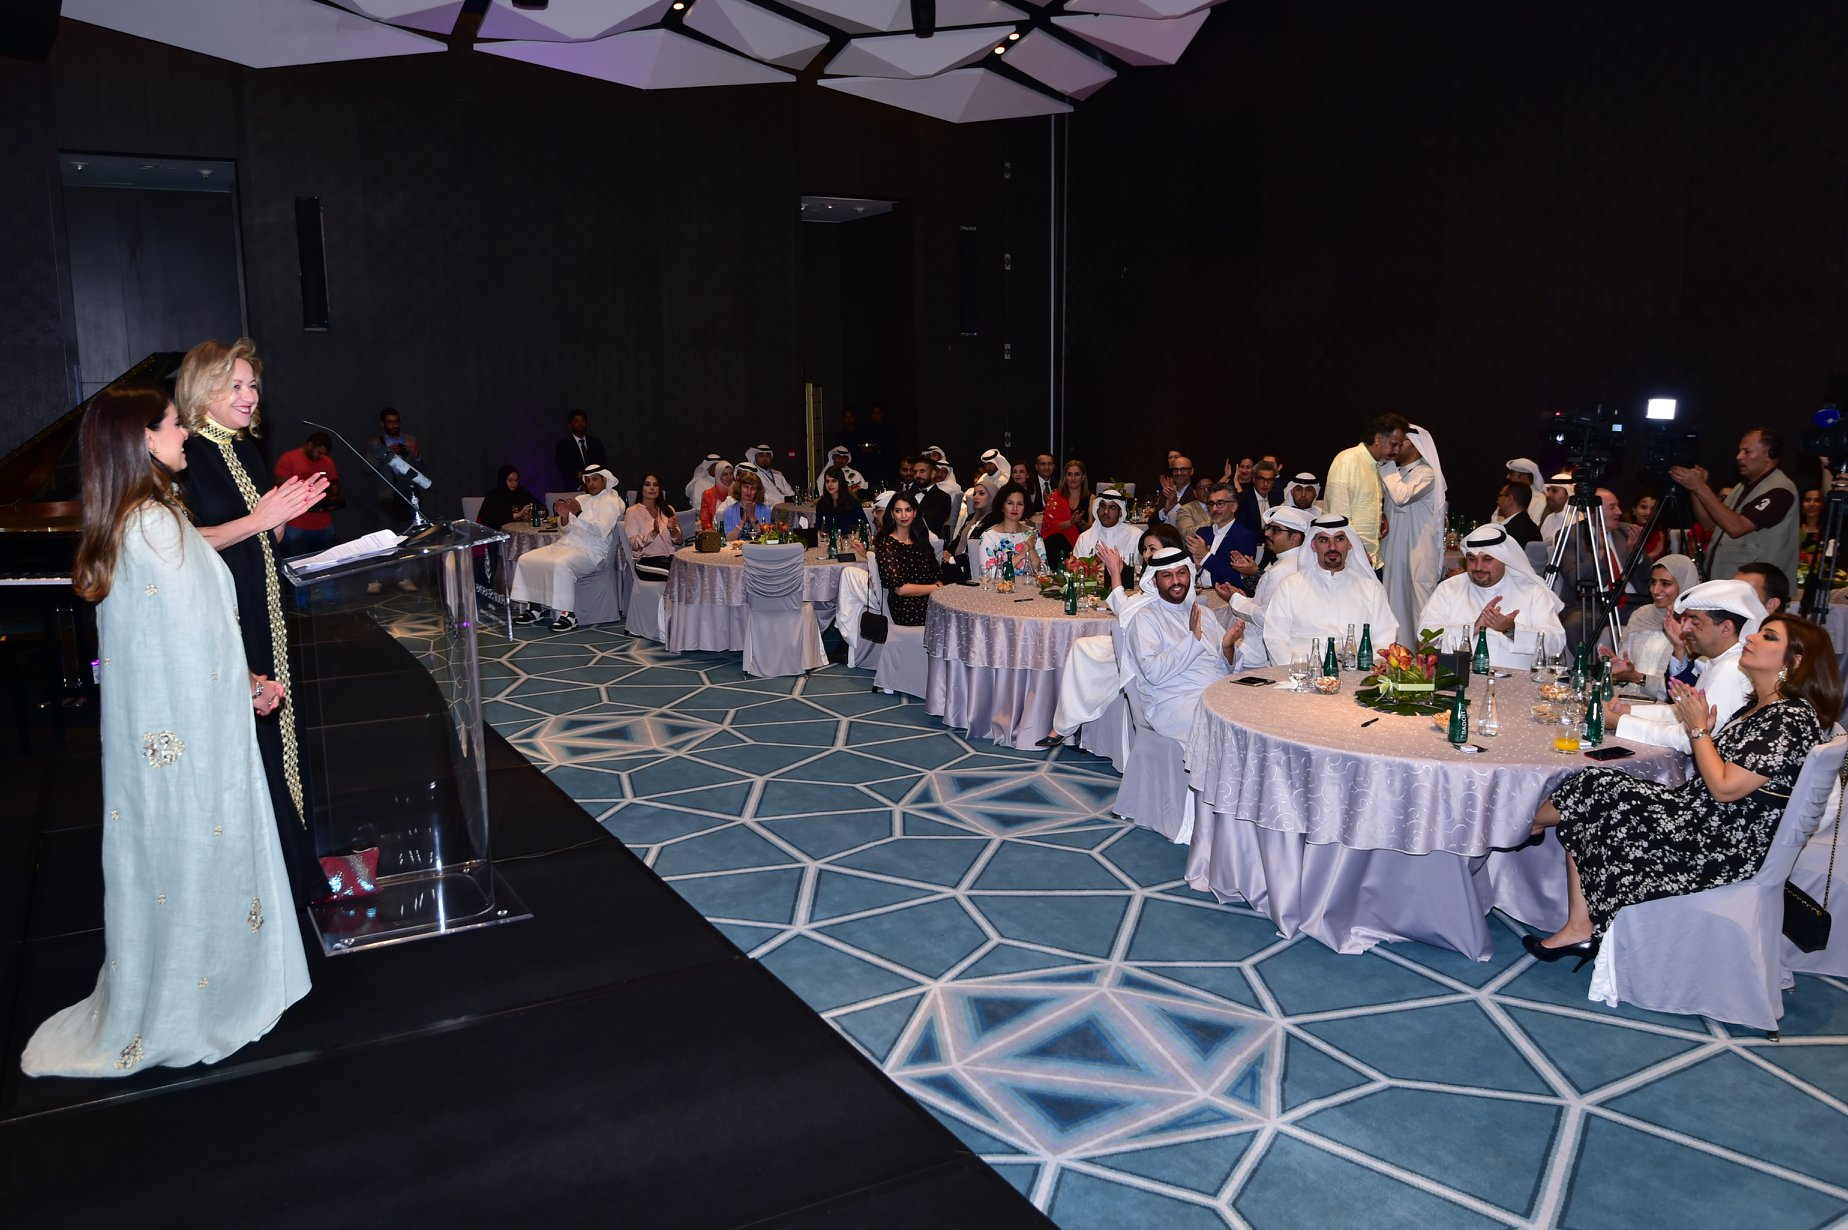 Starting the Gala Dinner at Four Seasons Hotel in Kuwait and celebrating the 63 Inspiring People portrayed in Those Who Inspire Kuwait ©Those Who Inspire